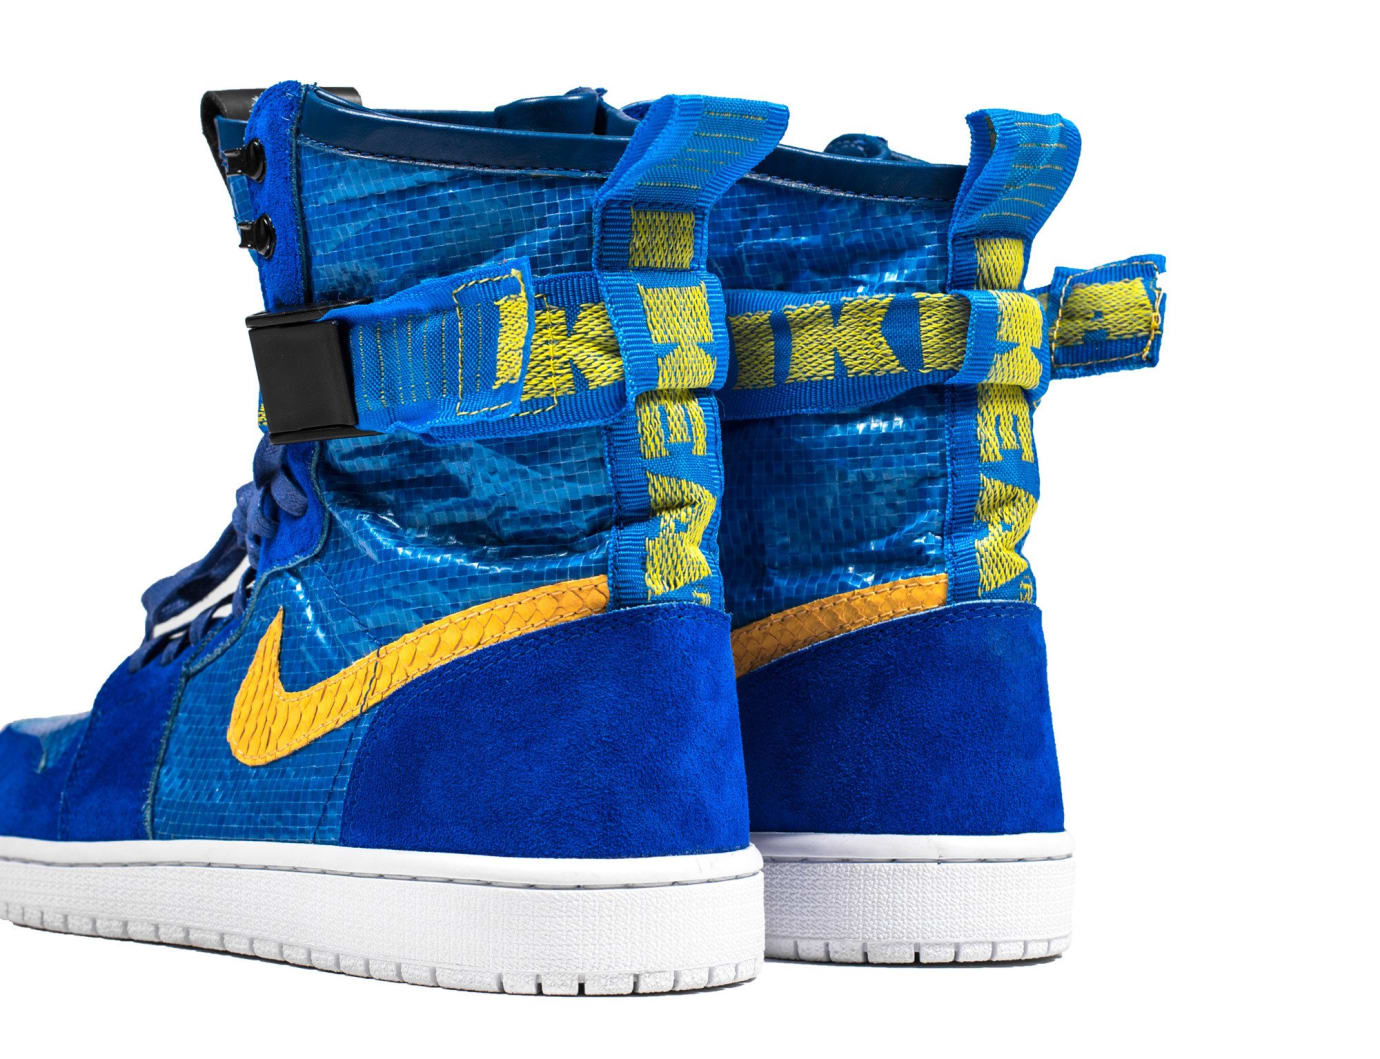 IKEA Air Jordan 1 High by The Shoe Surgeon Heel